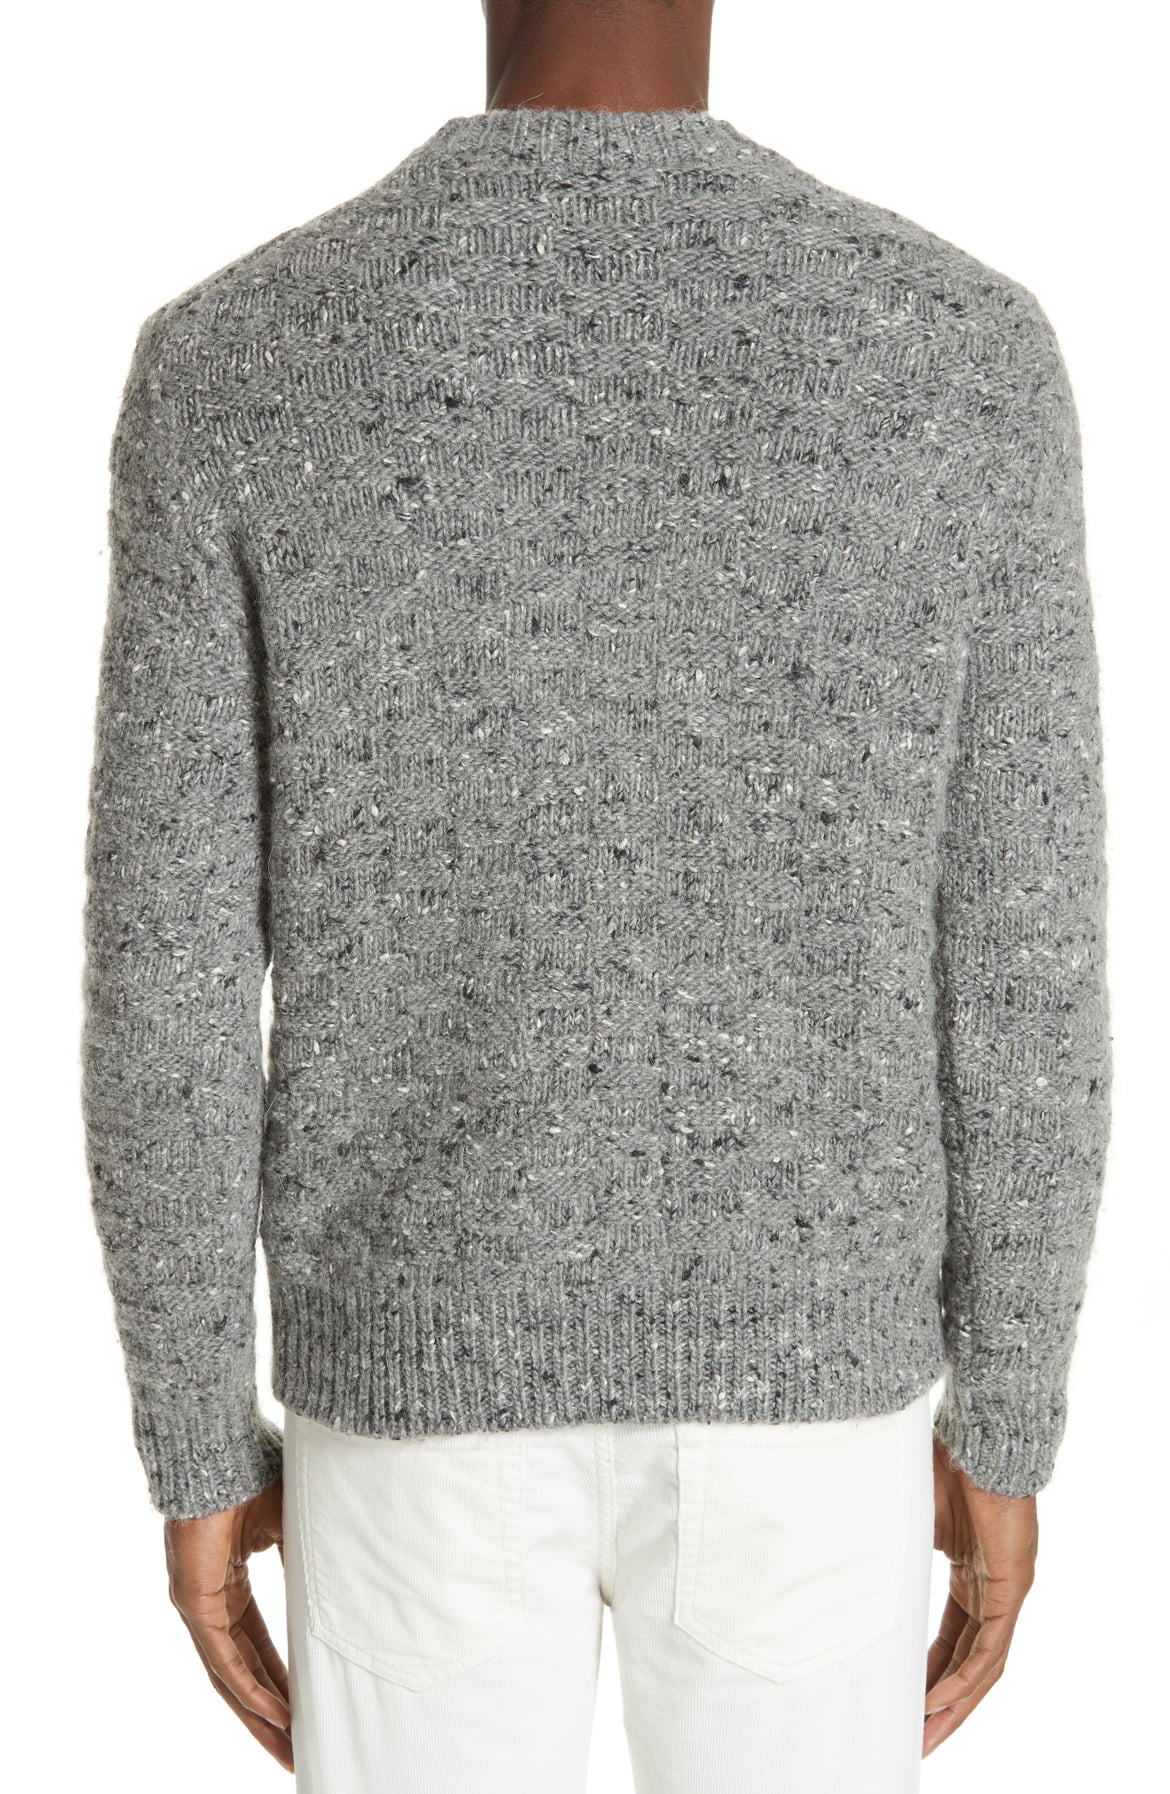 eleventy-Mens-Gray-Size-Large-L-Crewneck-Wool-Pullover-Knit-Sweater-495-675 miniature 2